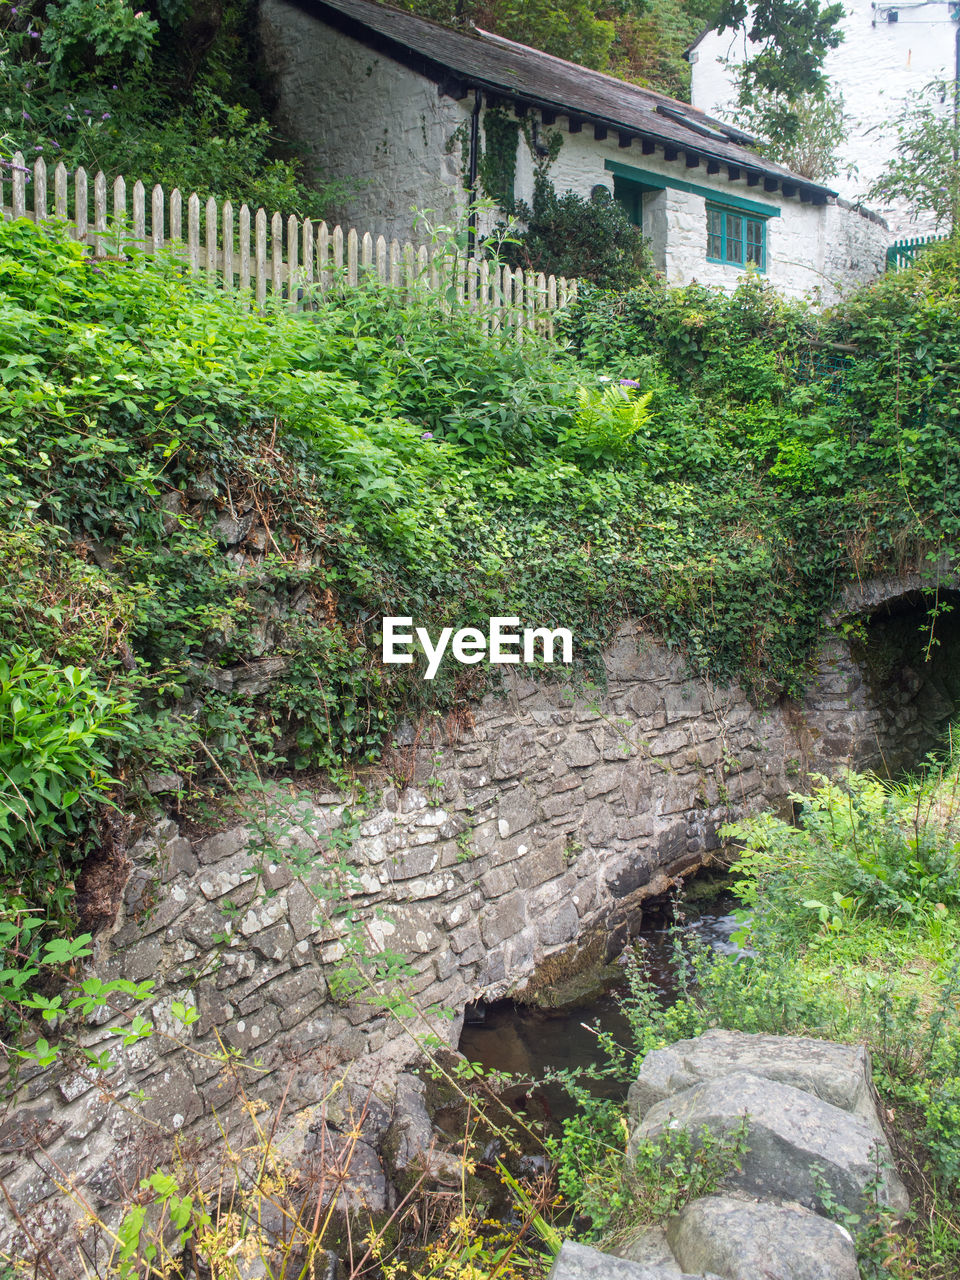 architecture, built structure, plant, no people, building exterior, day, nature, tree, outdoors, building, green color, solid, bridge, growth, grass, house, barrier, fence, connection, old, stone wall